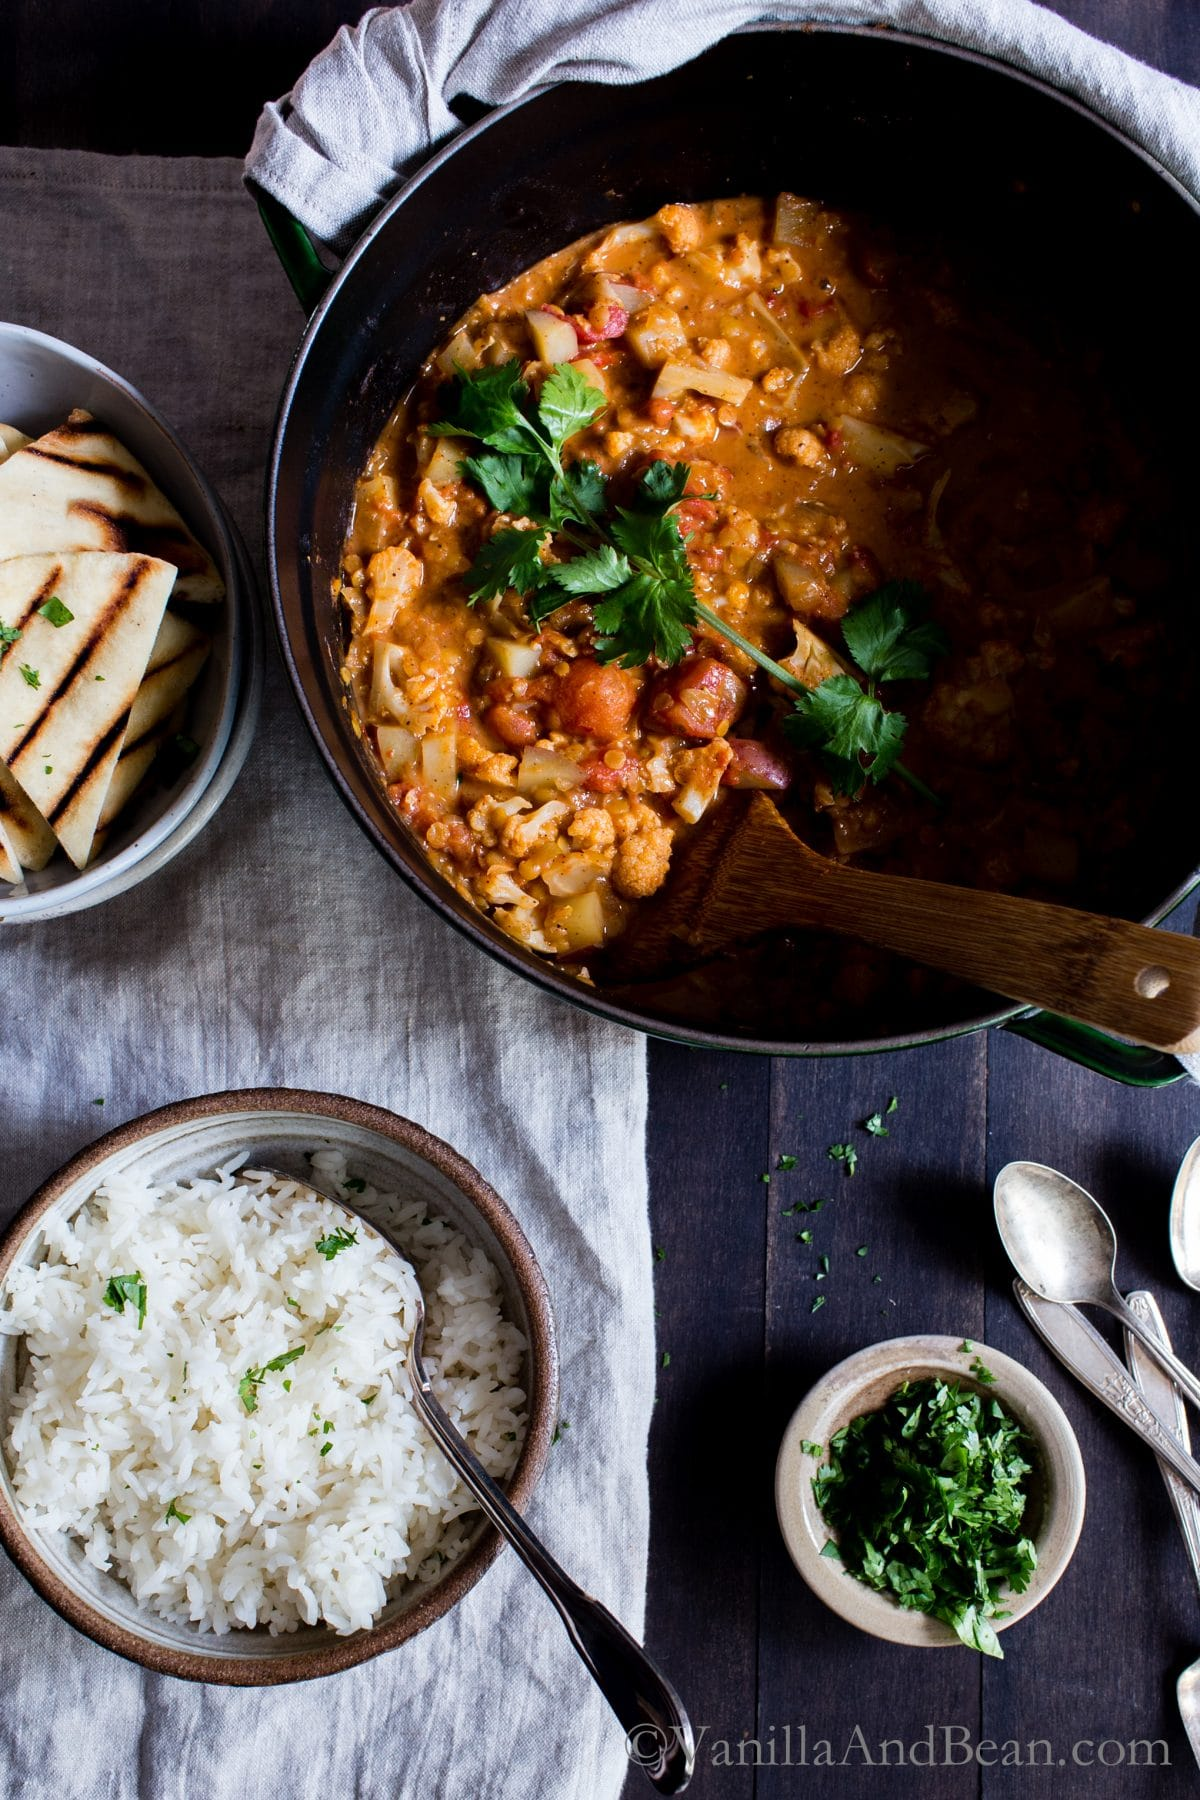 Hearty, rich and nourishing, Cauliflower-Potato Red Lentil Curry comes together with ease. Simple enough for a weeknight vegan or gluten-free meal, this Red Lentil Curry is freezer friendly too.